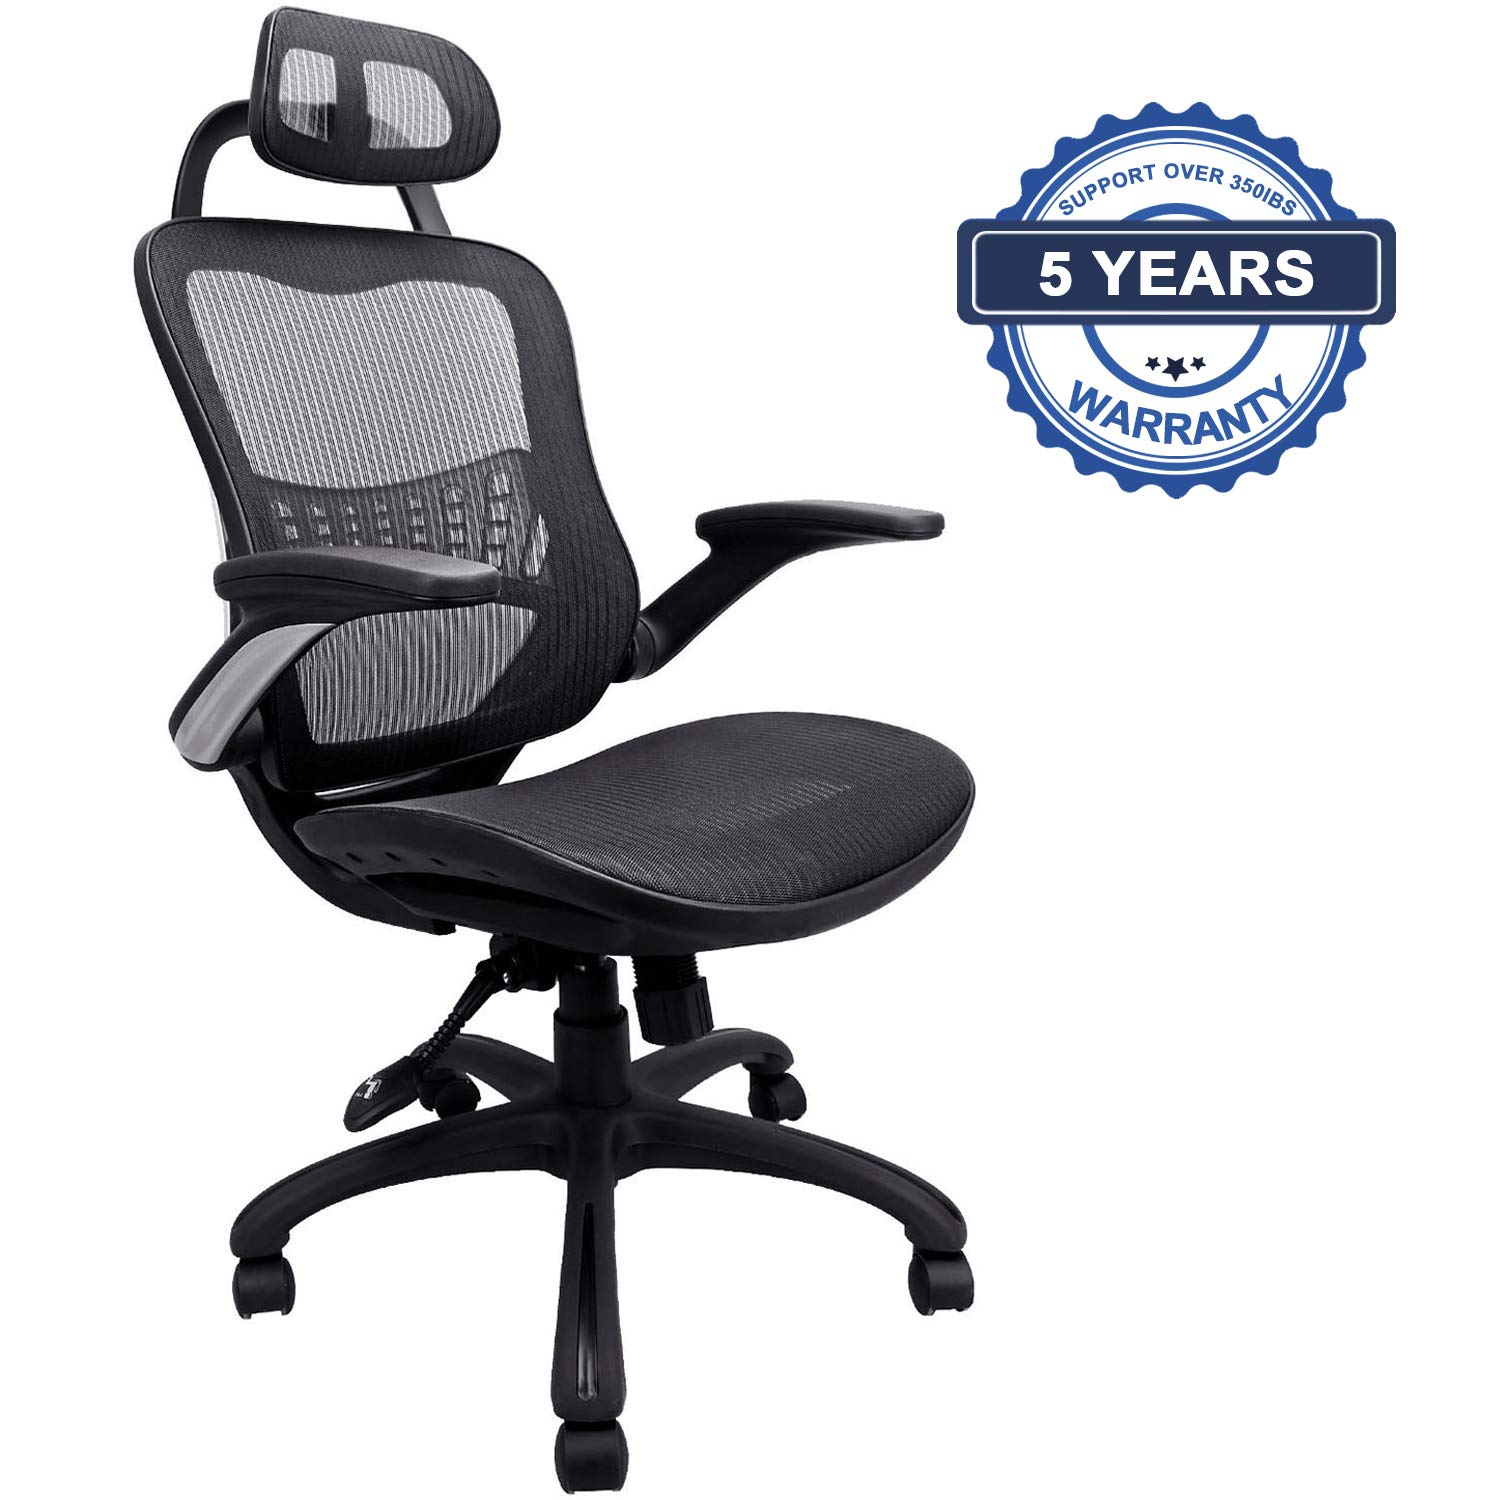 Ergonomic Office Chair, Weight Capacity Over 300Ibs Passed BIFMA,Breathable High Back Mesh Office Chairs,Adjustable Headrest,Backrest and Flip-up Armrests,Executive Office Chair for Height Under 5'11